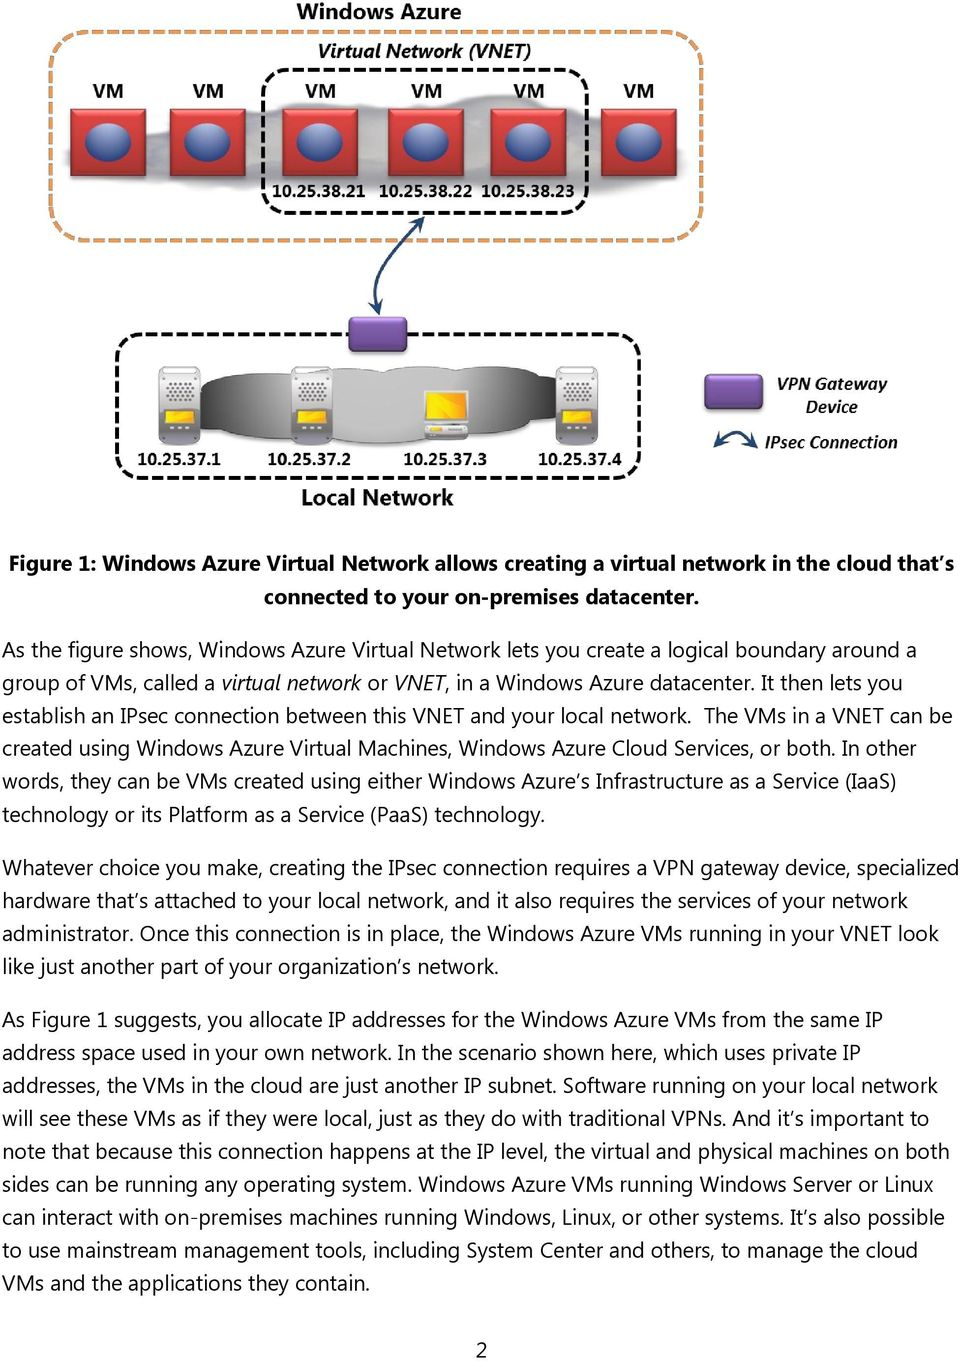 It then lets you establish an IPsec connection between this VNET and your local network. The VMs in a VNET can be created using Windows Azure Virtual Machines, Windows Azure Cloud Services, or both.